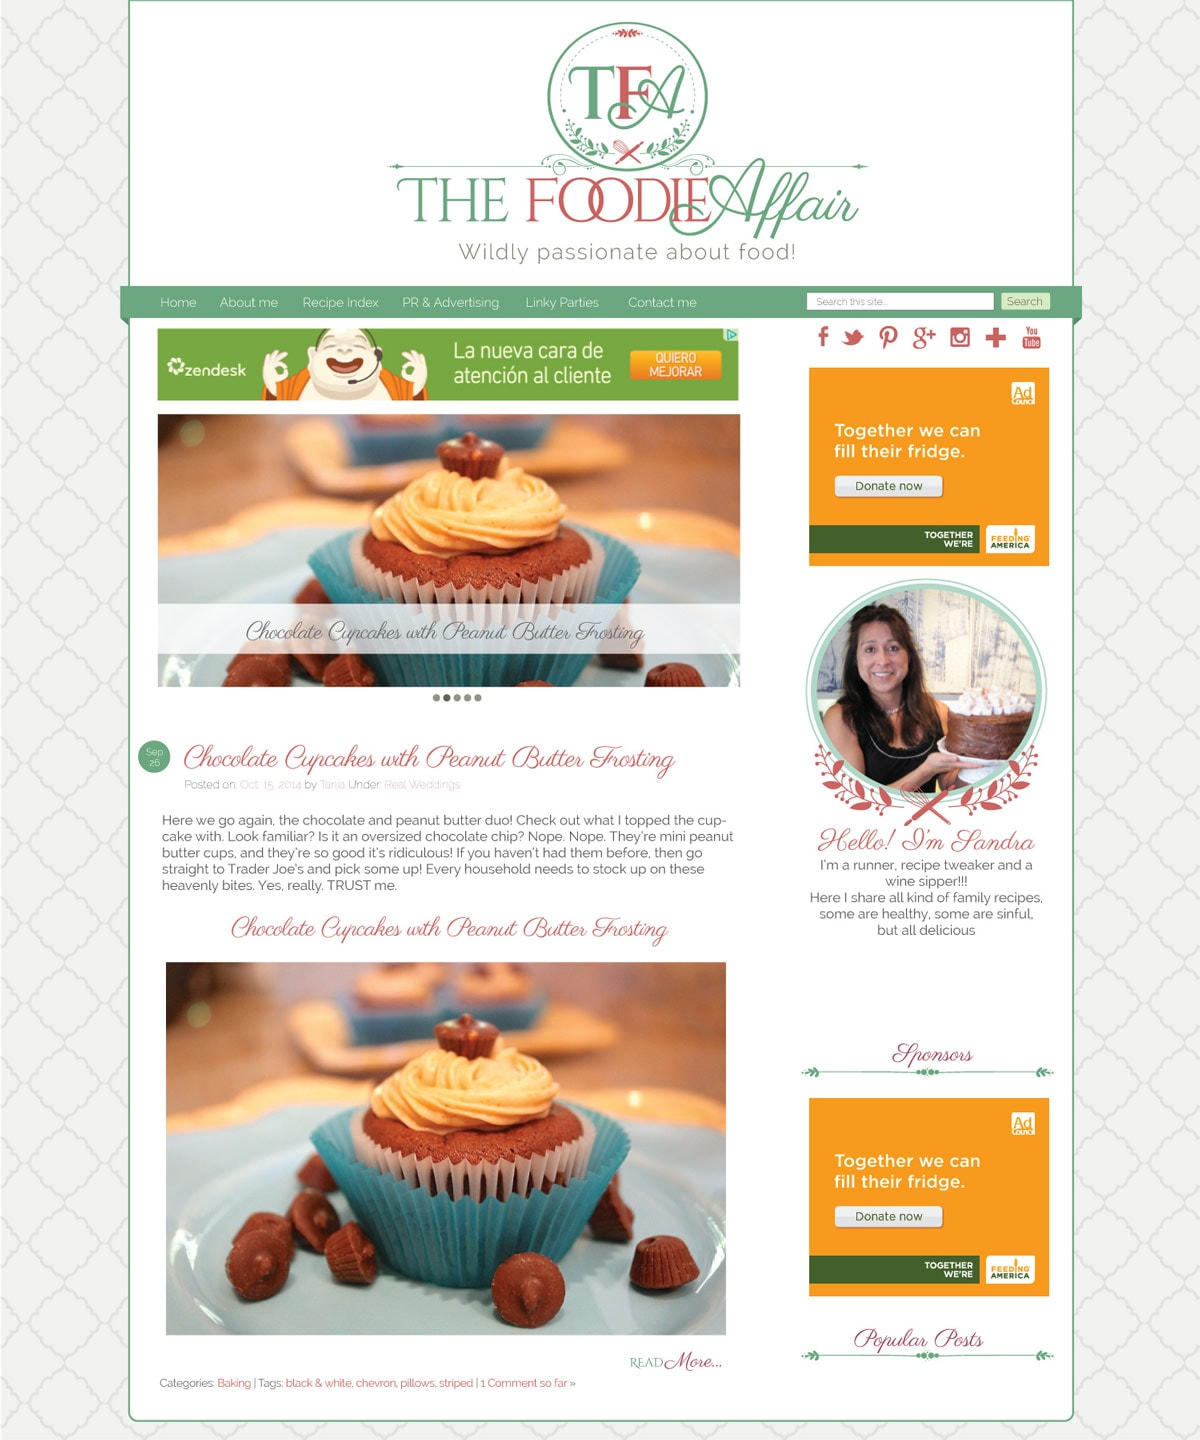 The-Foodie-Affair-BLOG-V3